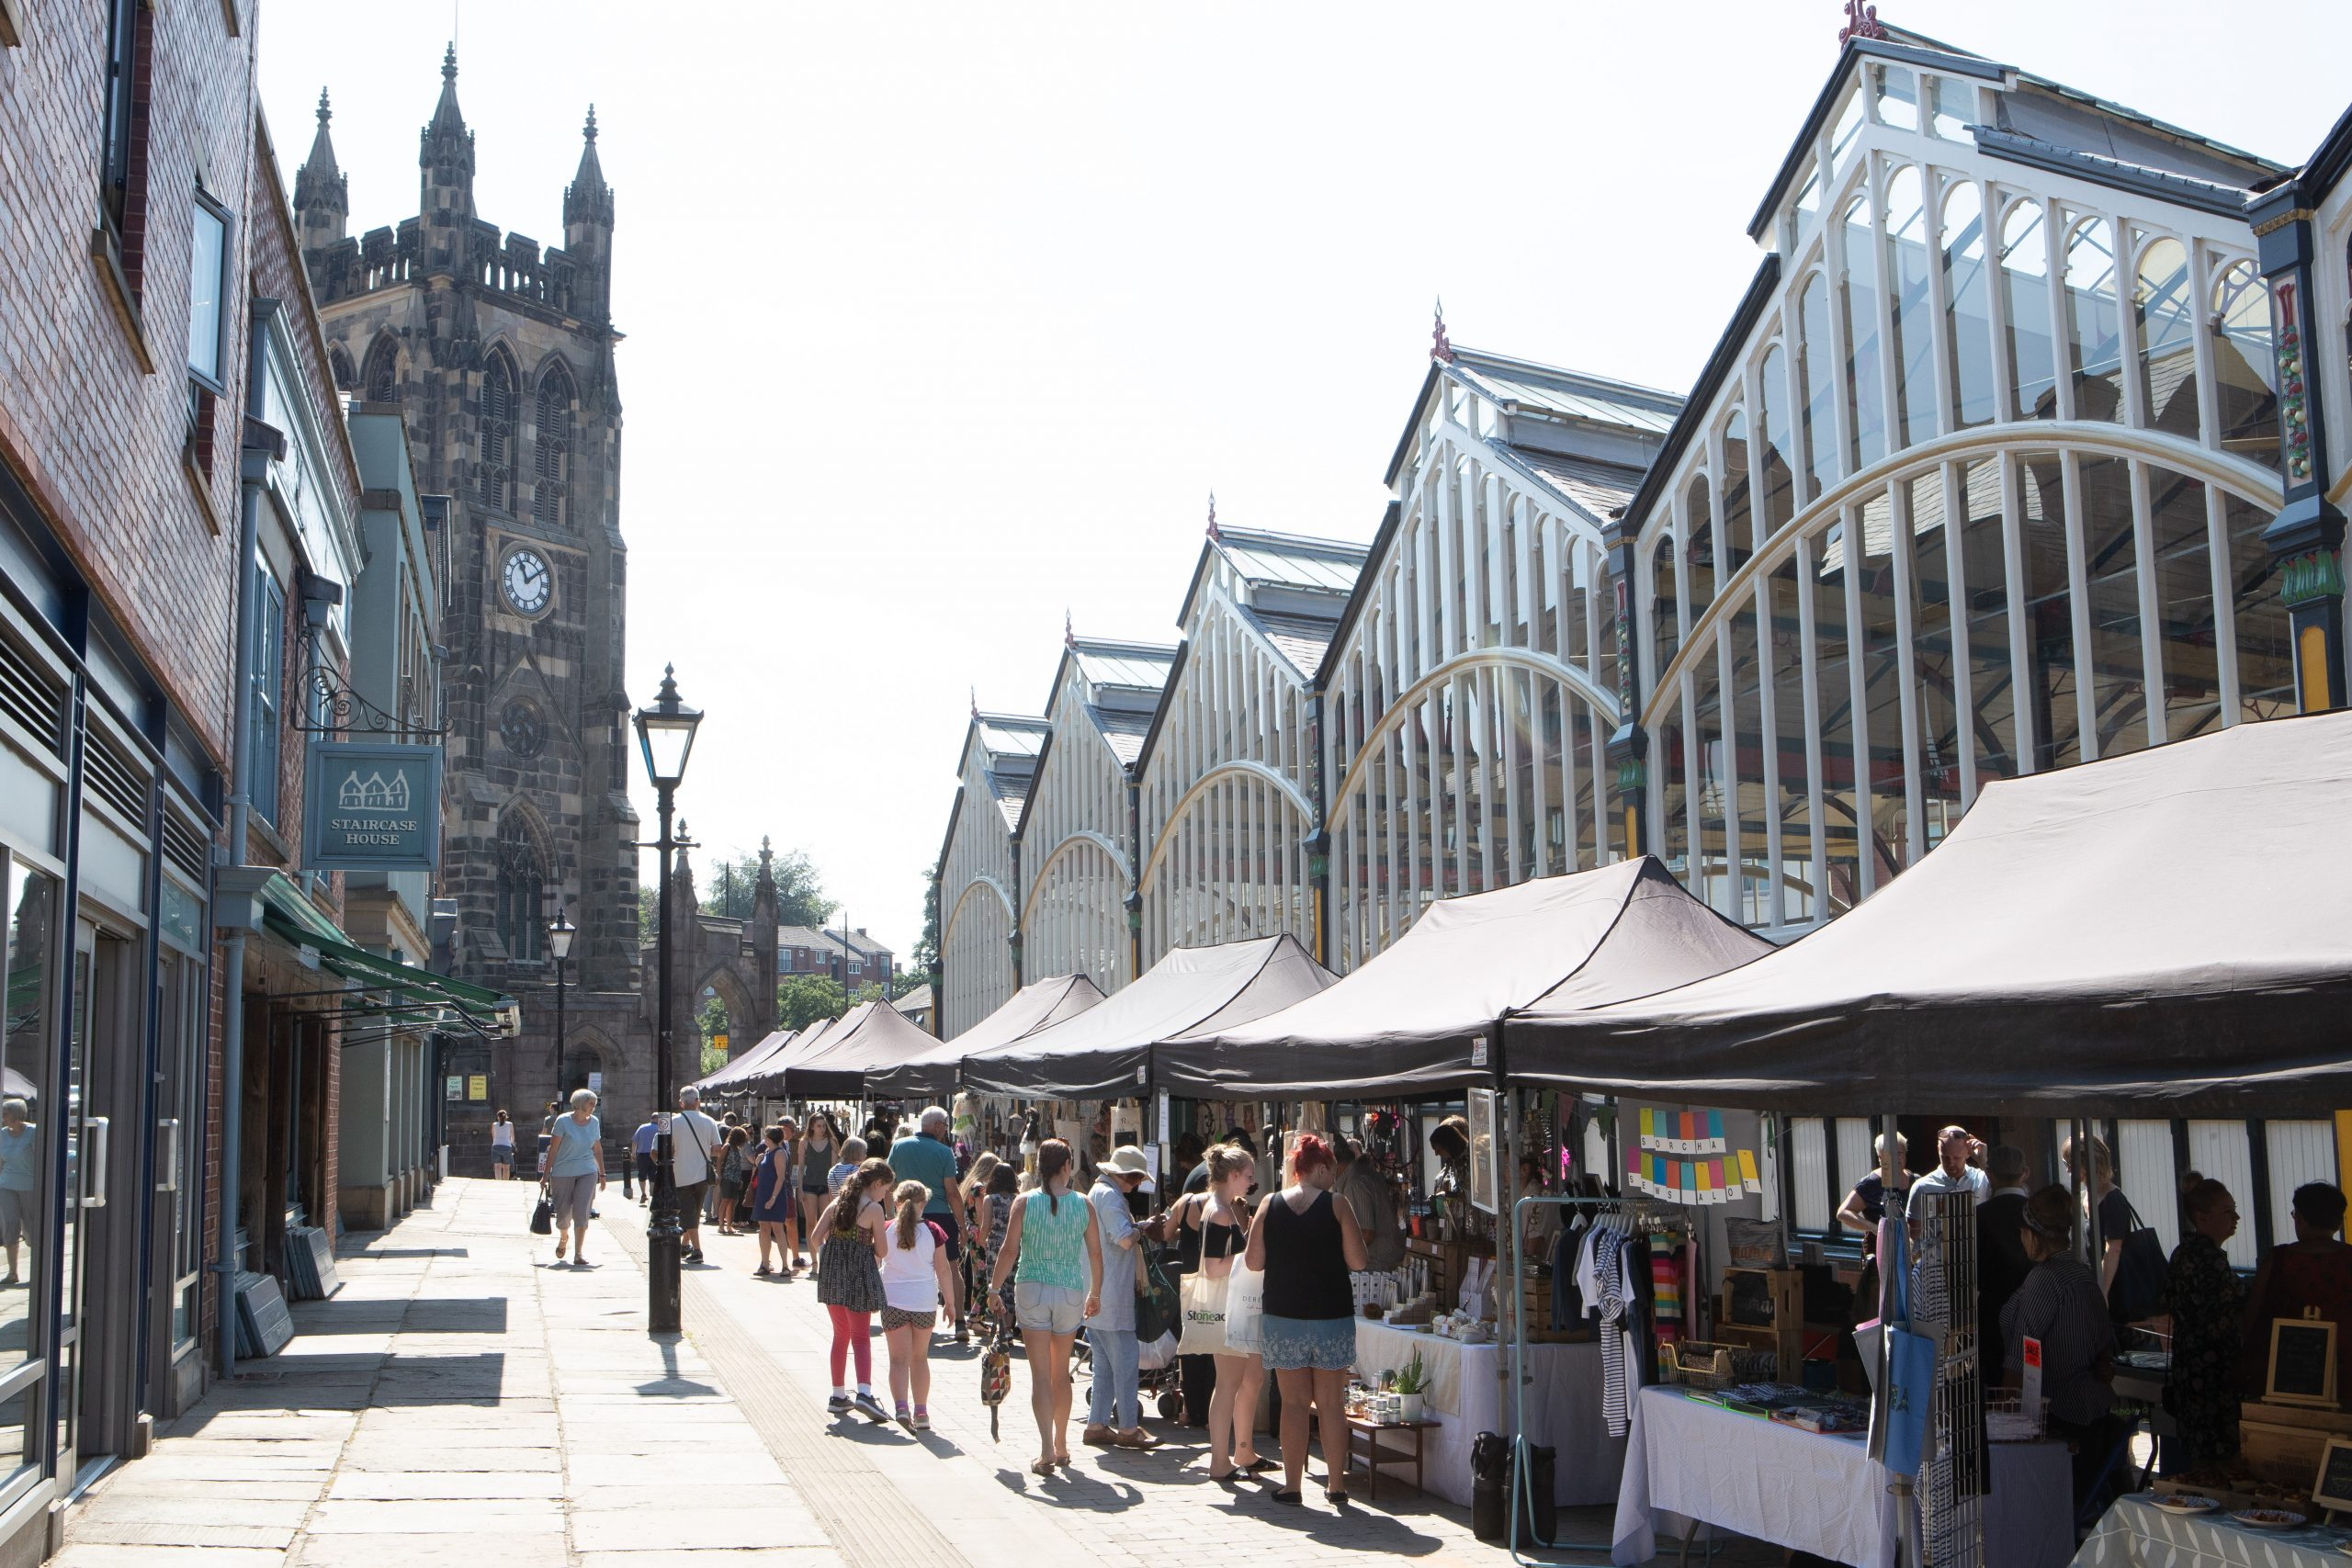 Stockport, Makers Market, Town centre, Marketplace